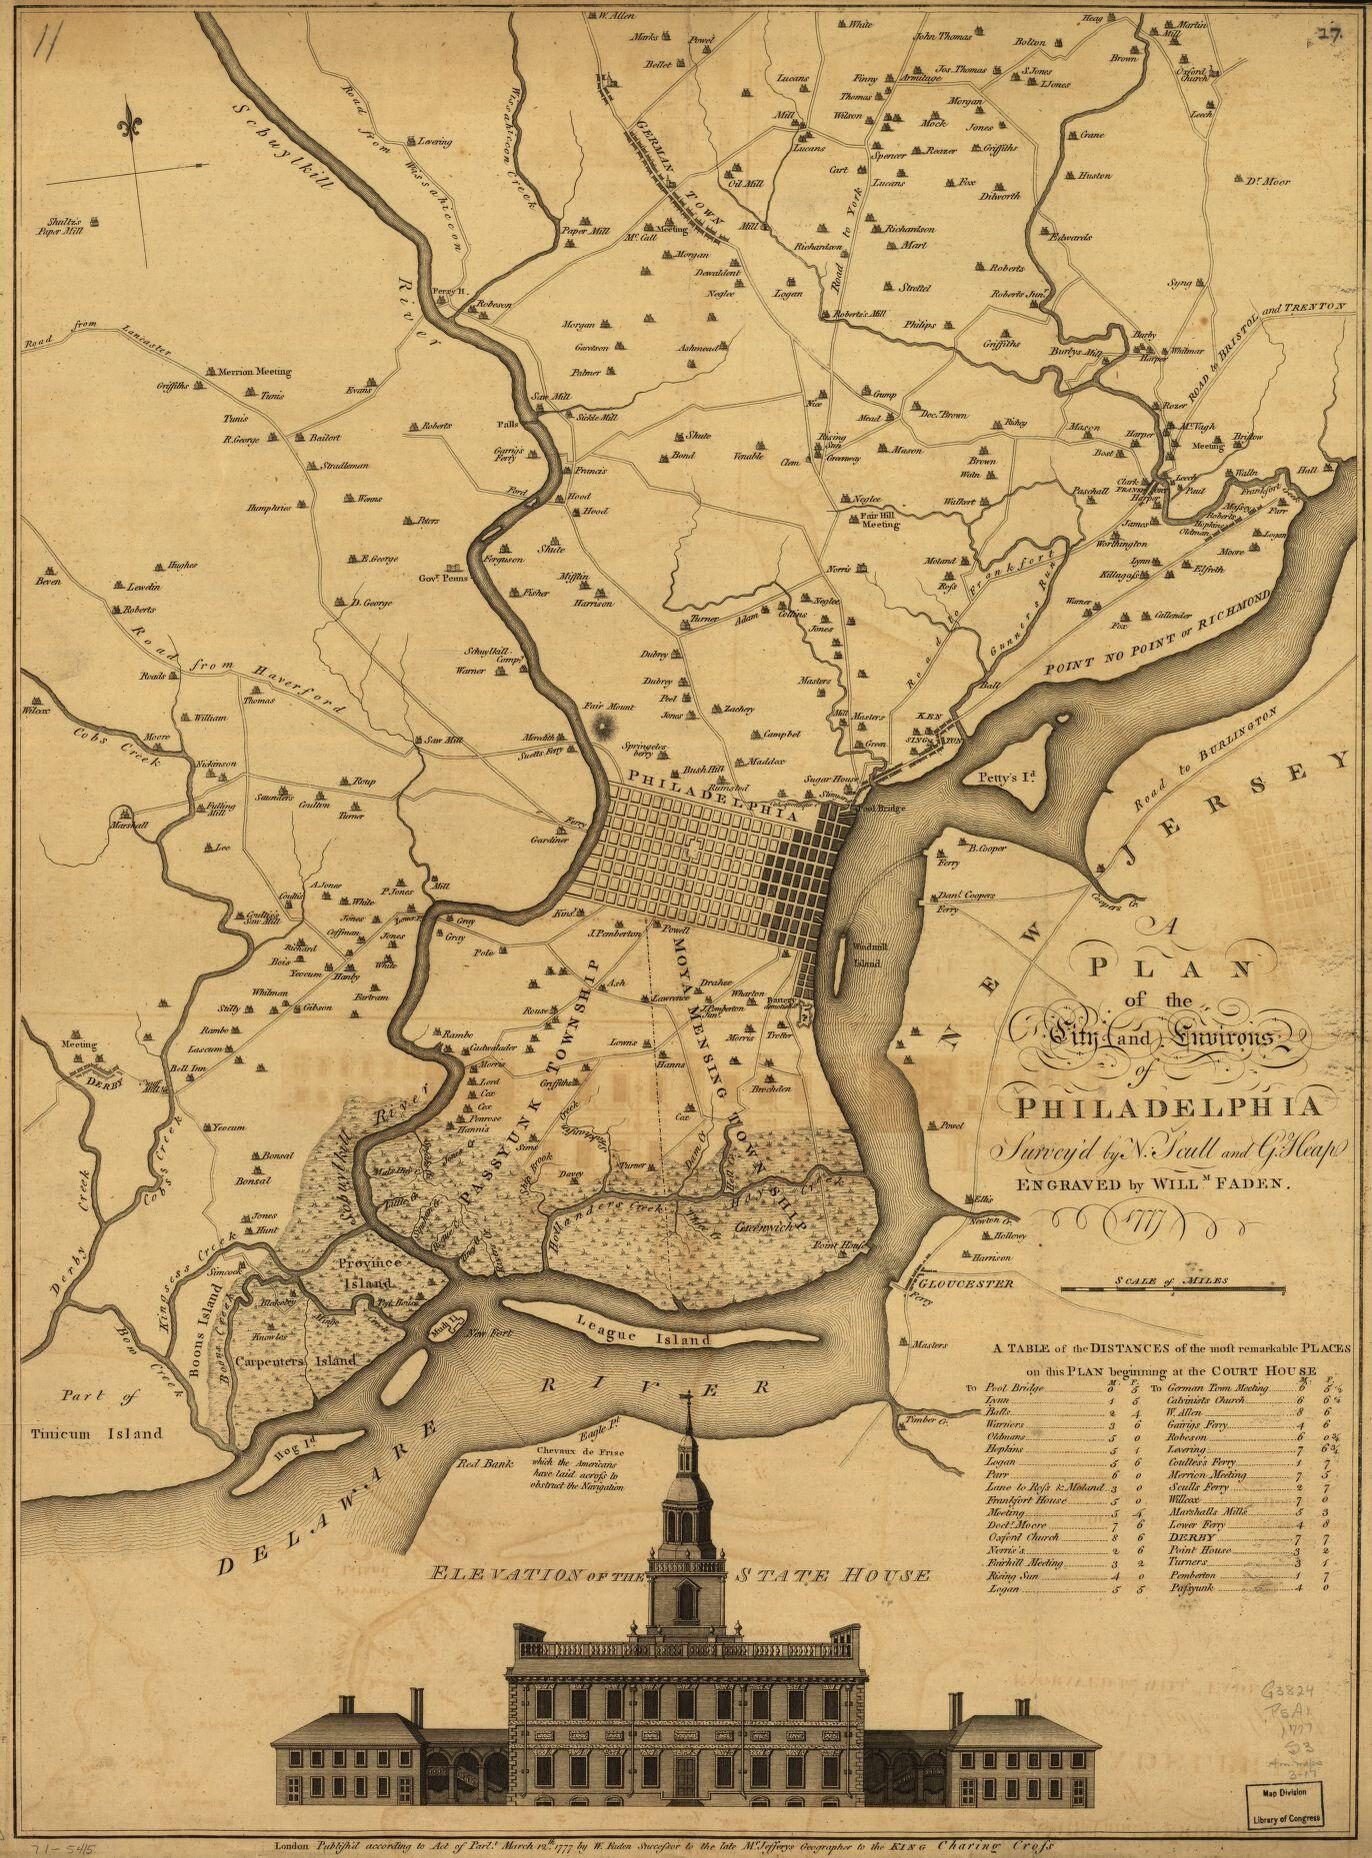 "Nicholas Scull, A plan of the city and environs of Philadelphia,"" (London: W. Faden, 1777). Library of Congress Geography and Map Division, Washington, D.C."